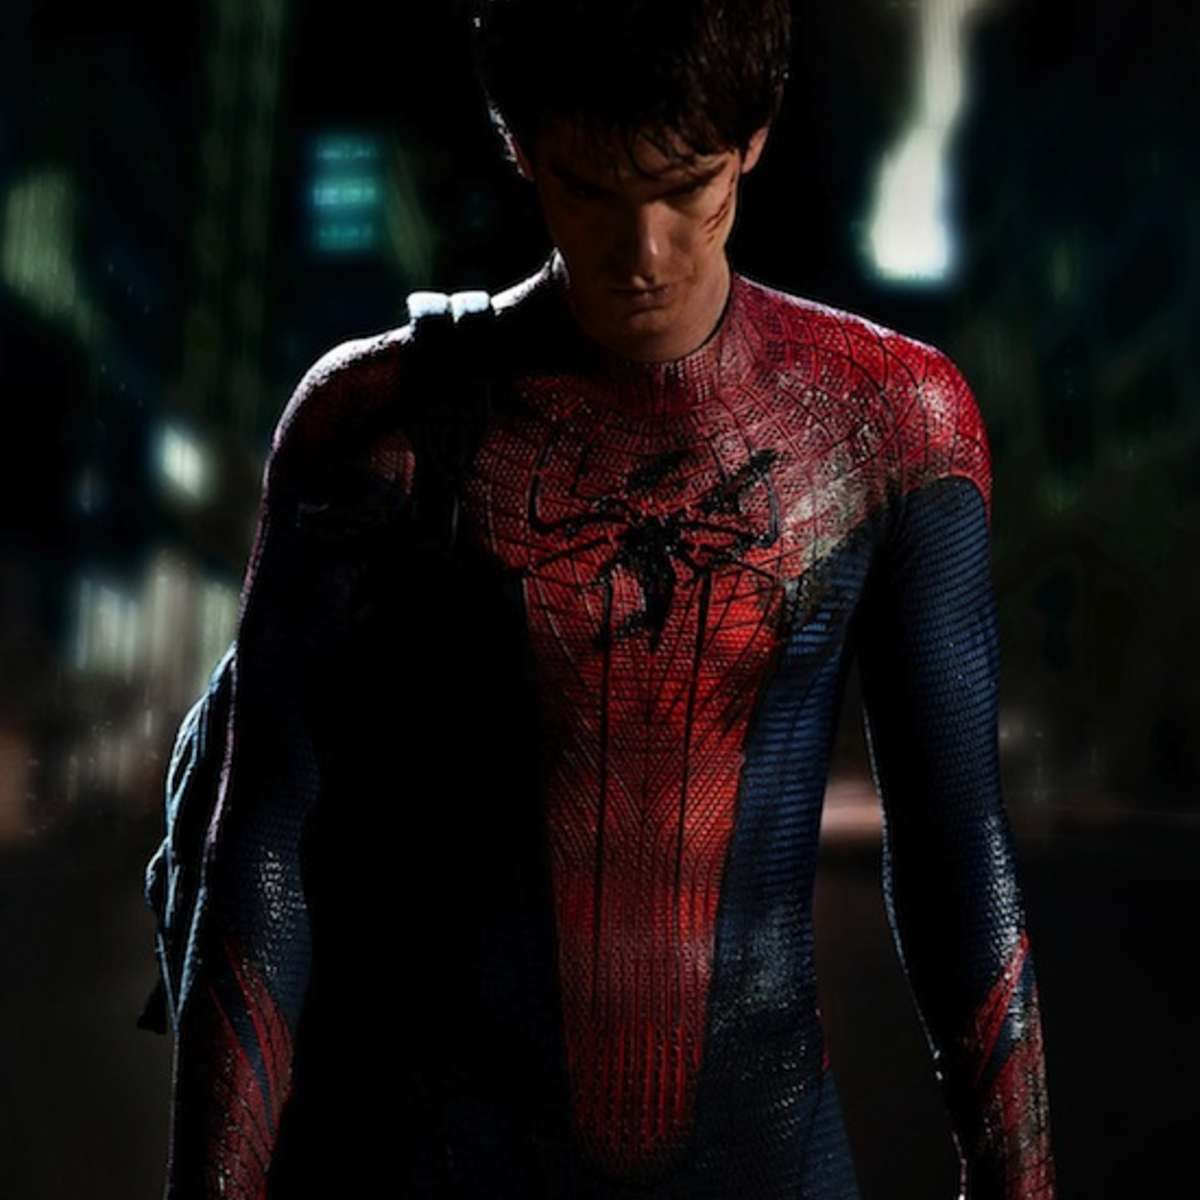 Andrew-Garfield_Spider-Man_0.jpg